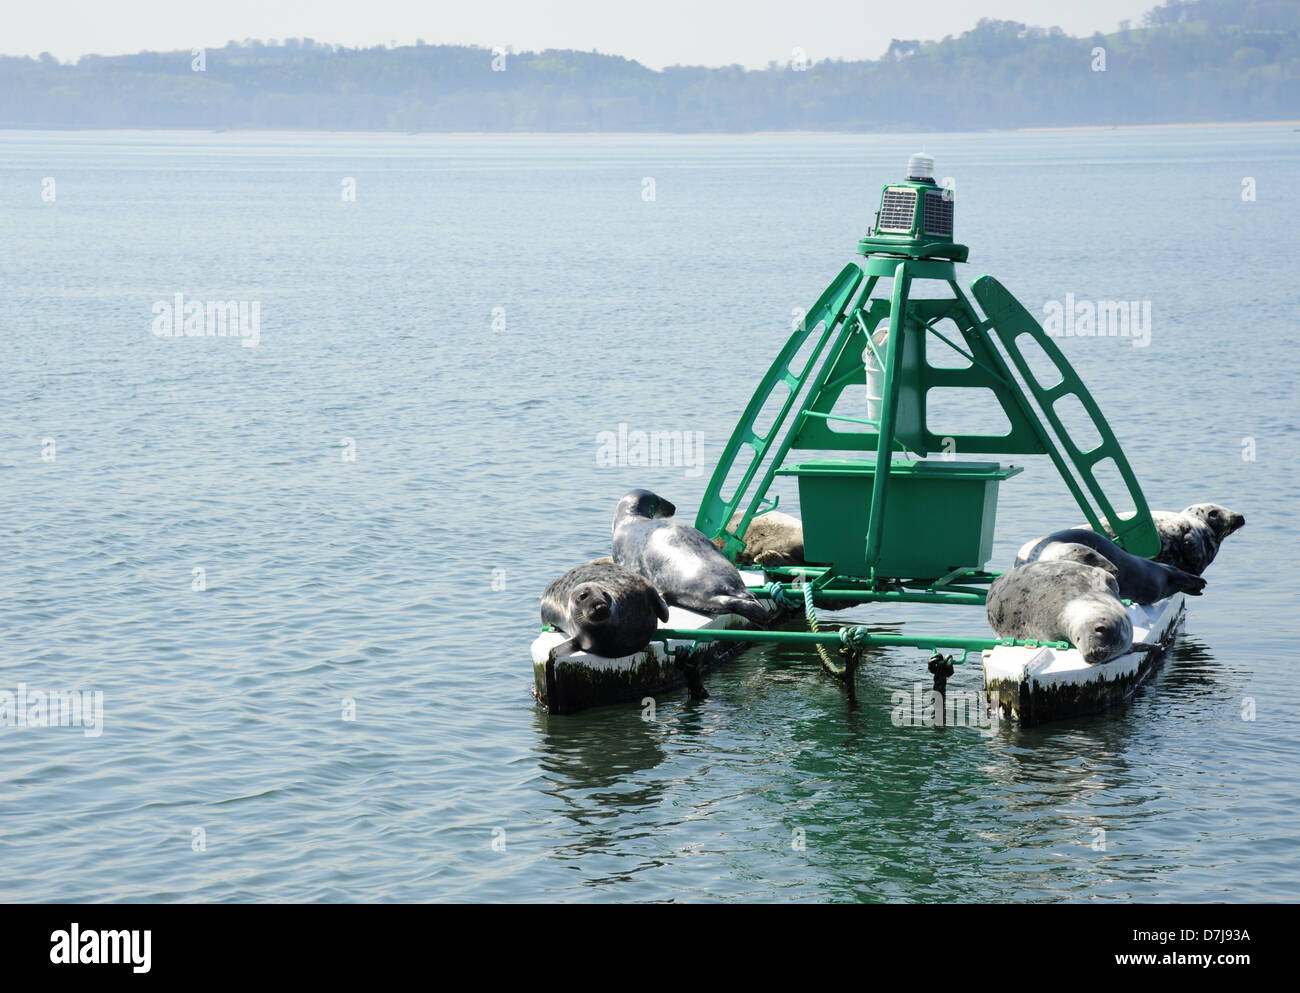 A navigation bouy on the Firth of Forth festooned with seals. - Stock Image